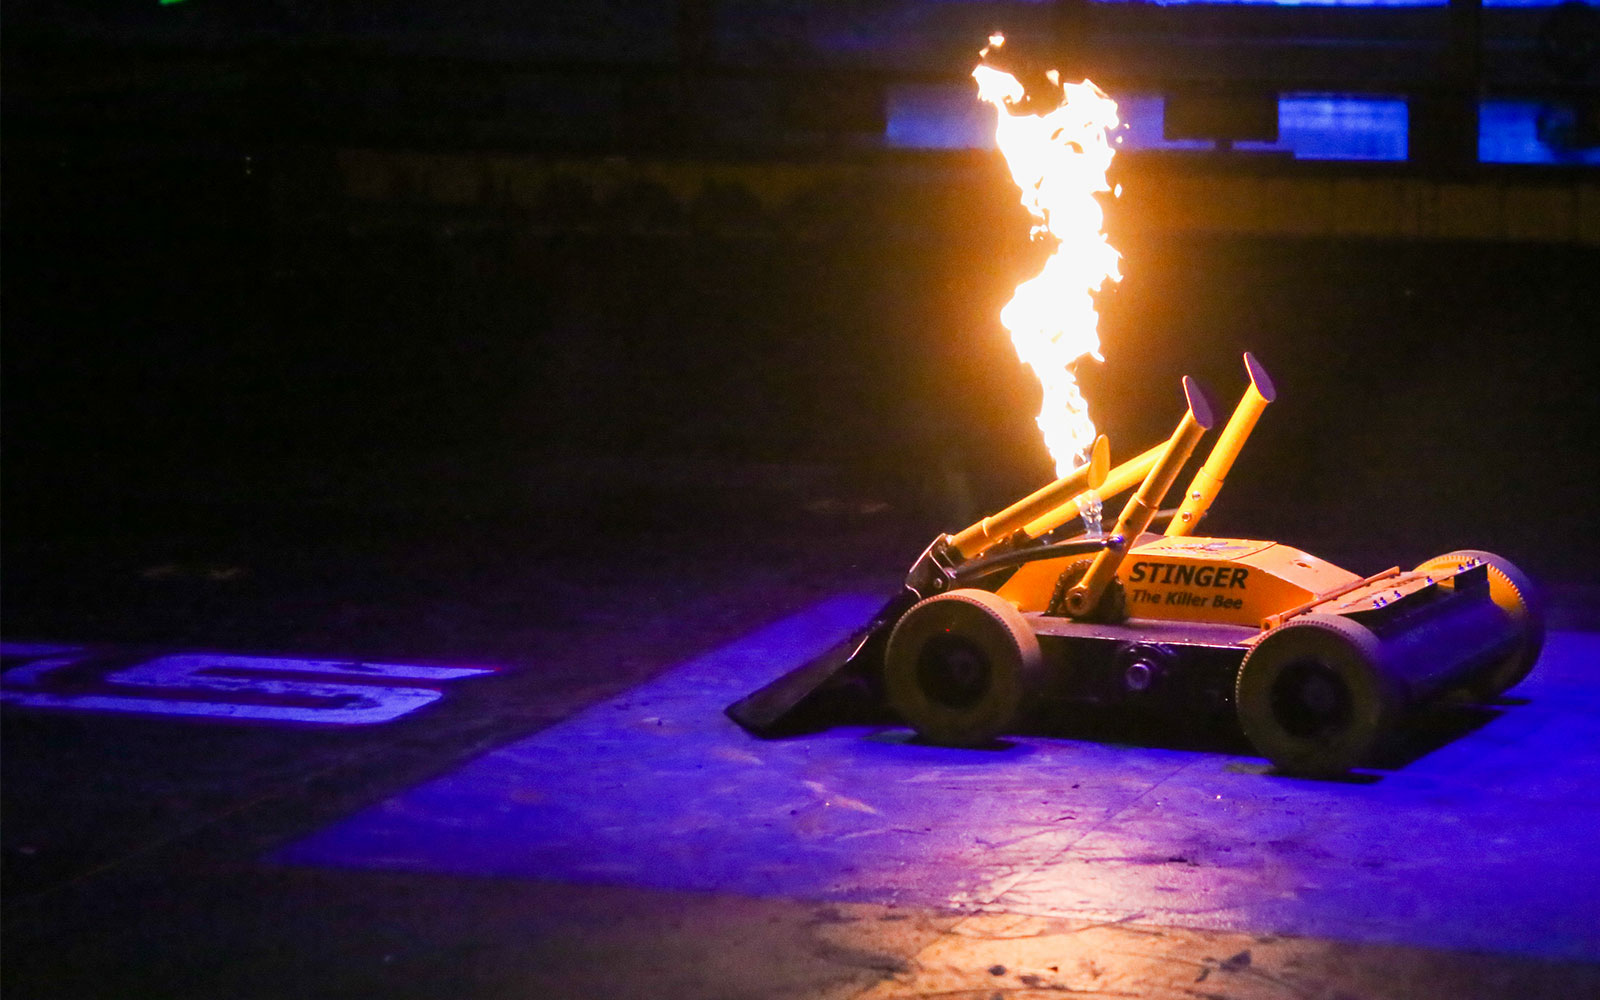 Meet the BattleBots